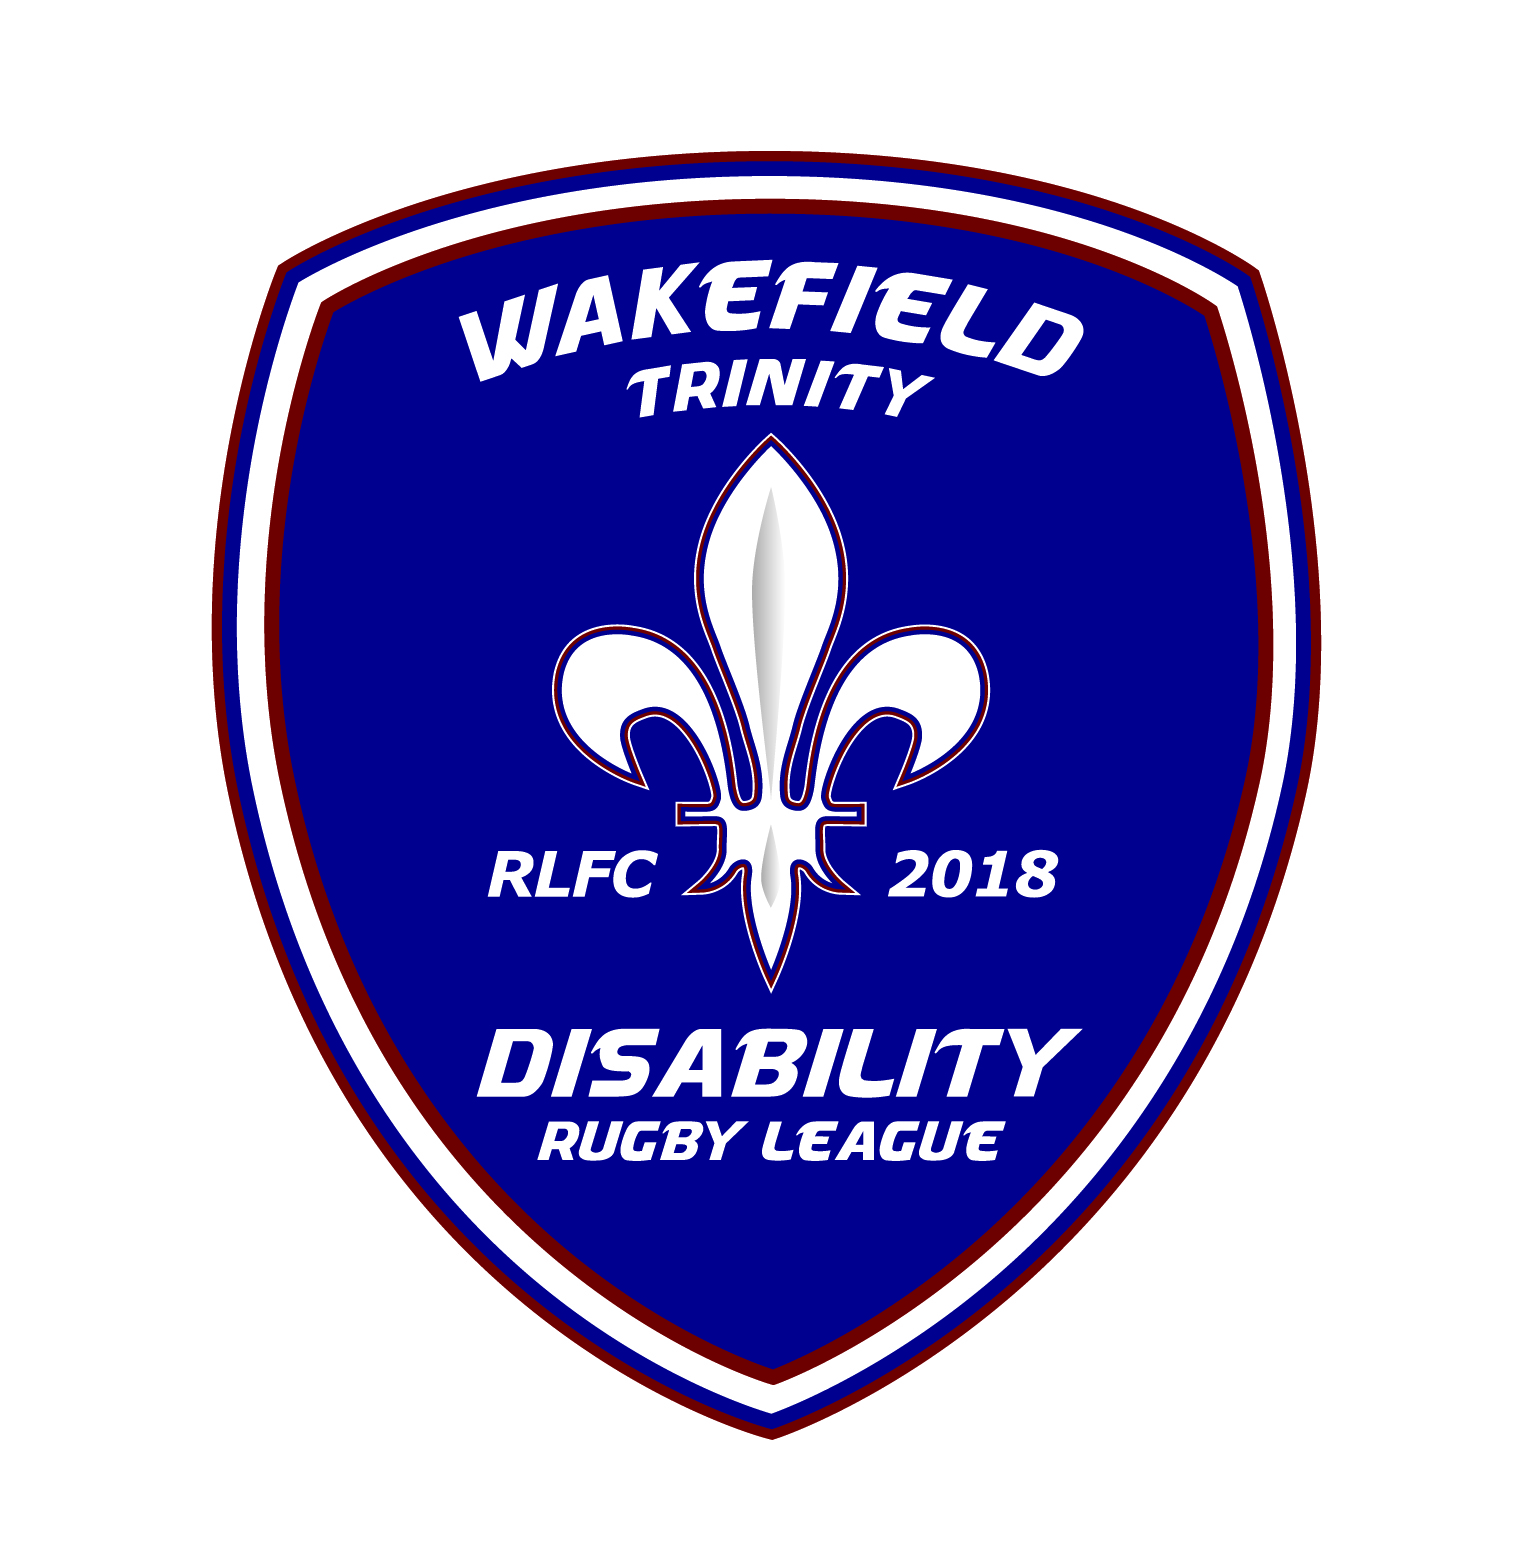 Wakefield Trinity Disability Rugby League badge